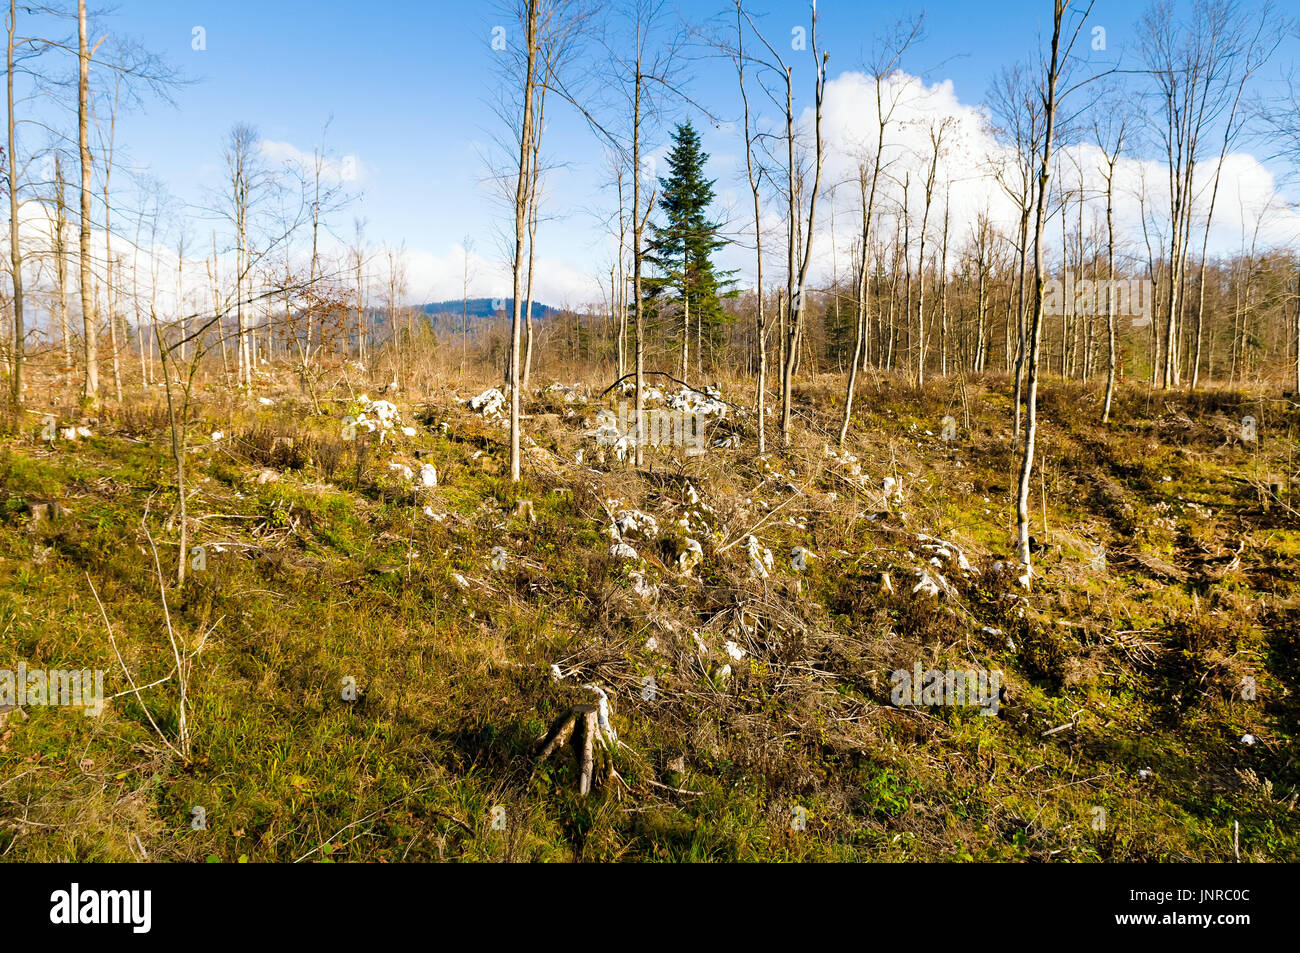 Mixed forest stand devastated after sleet (Europe, Slovenia) in 2014. - Stock Image